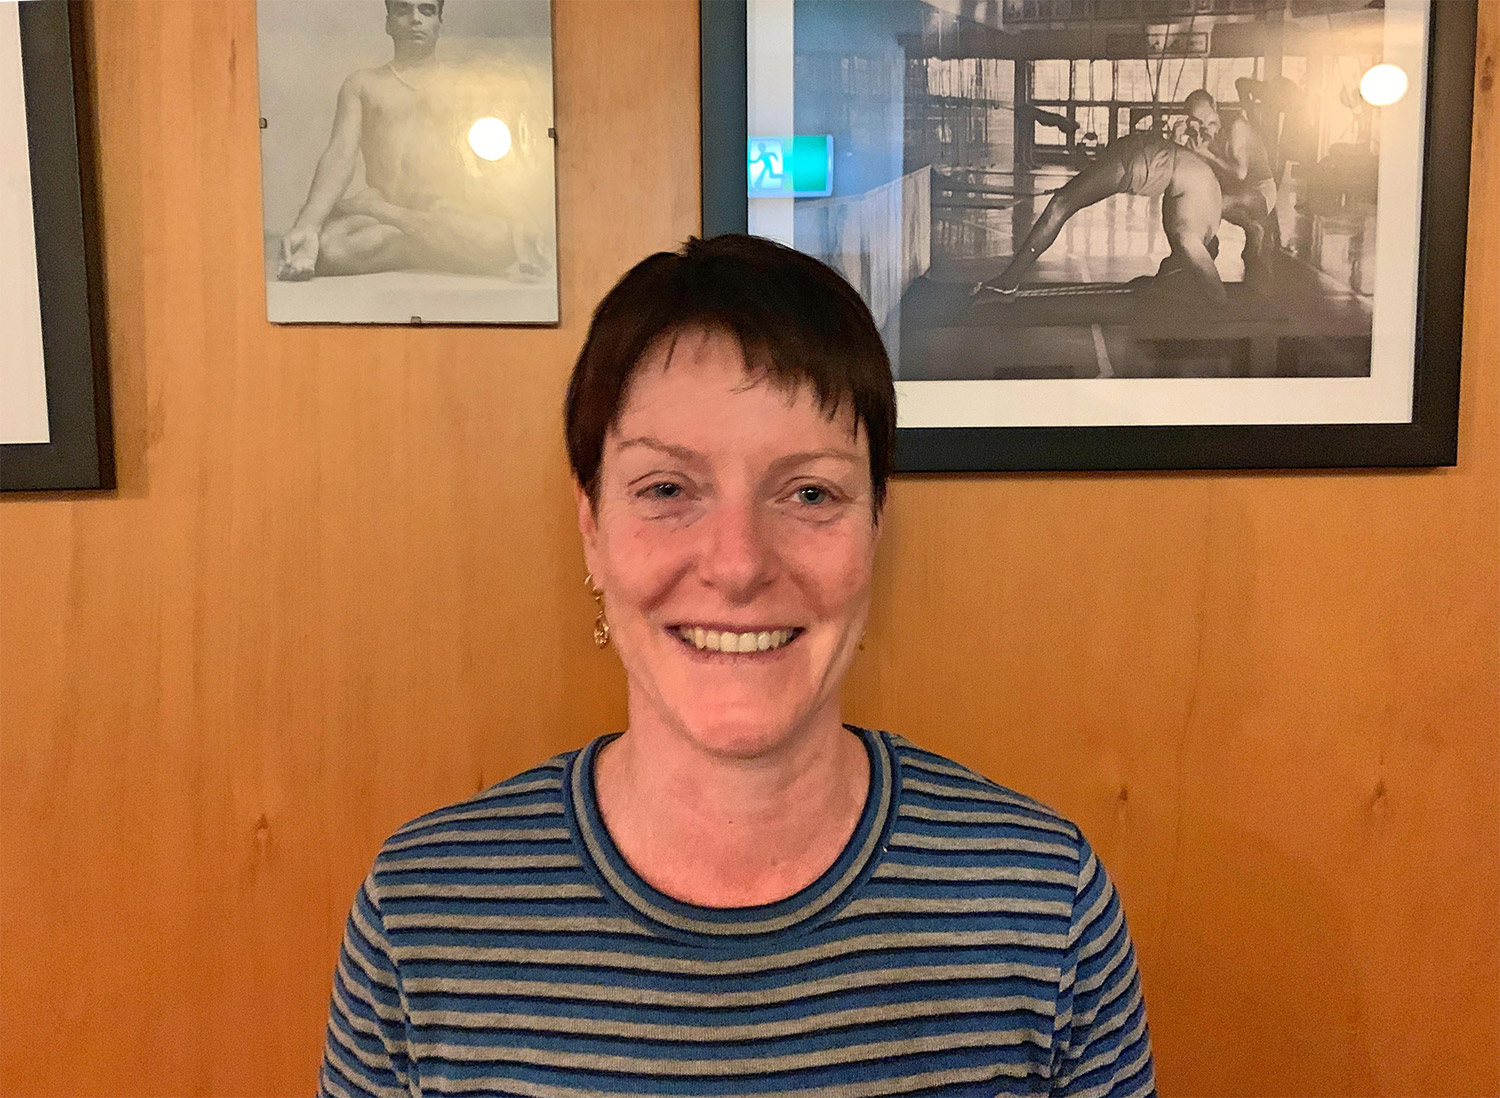 Kathryn Clarke   Kathryn is a certified Iyengar teacher who has been practising yoga for the past 20 years. She is a registered nurse who has spent a number of years as a volunteer in remote villages in India.